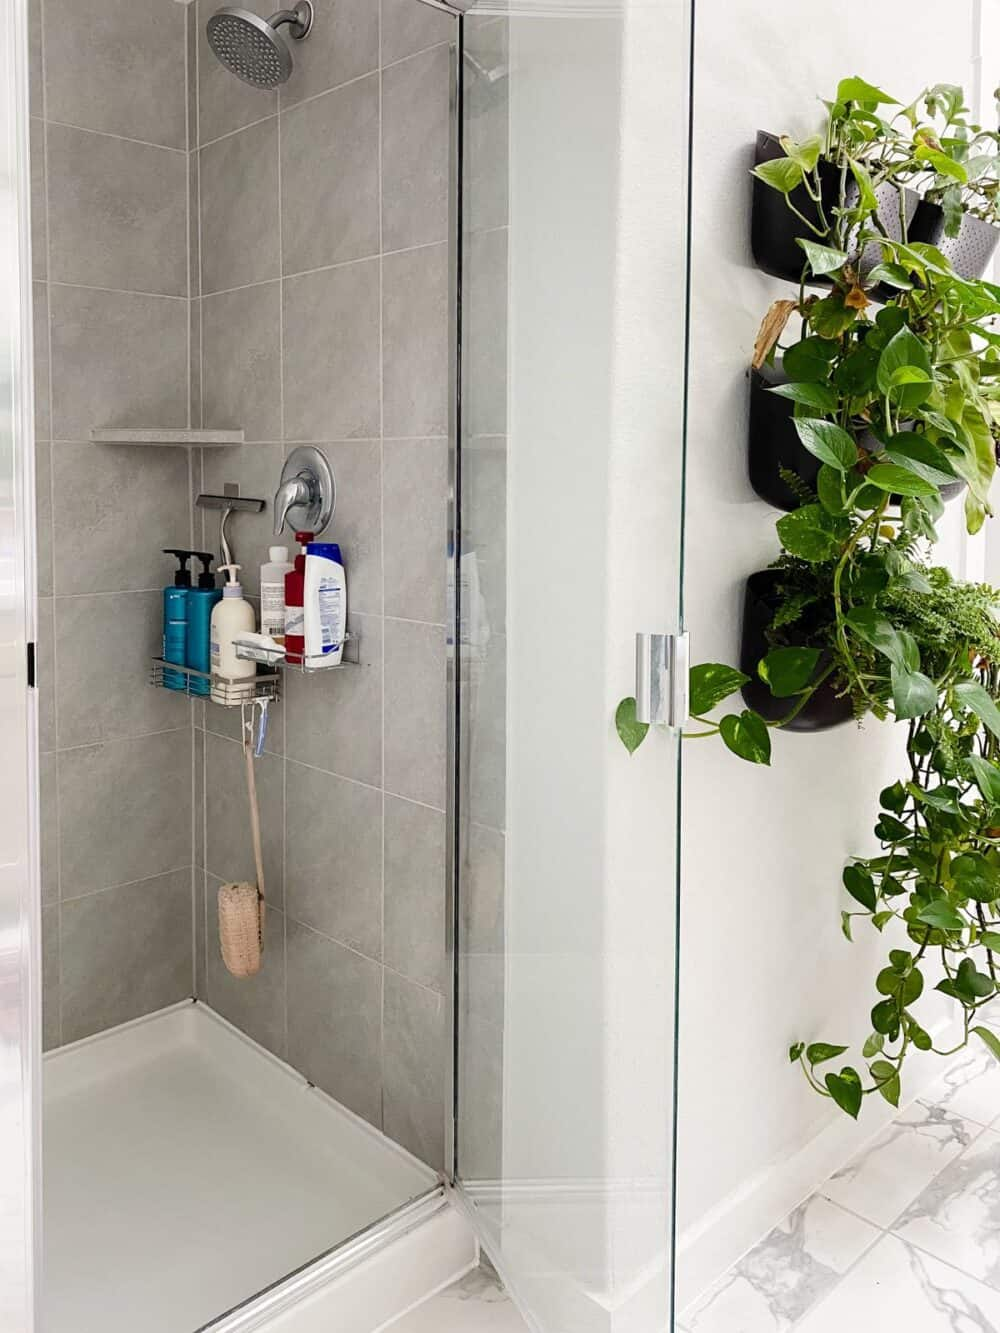 Shower with shelves for toiletries